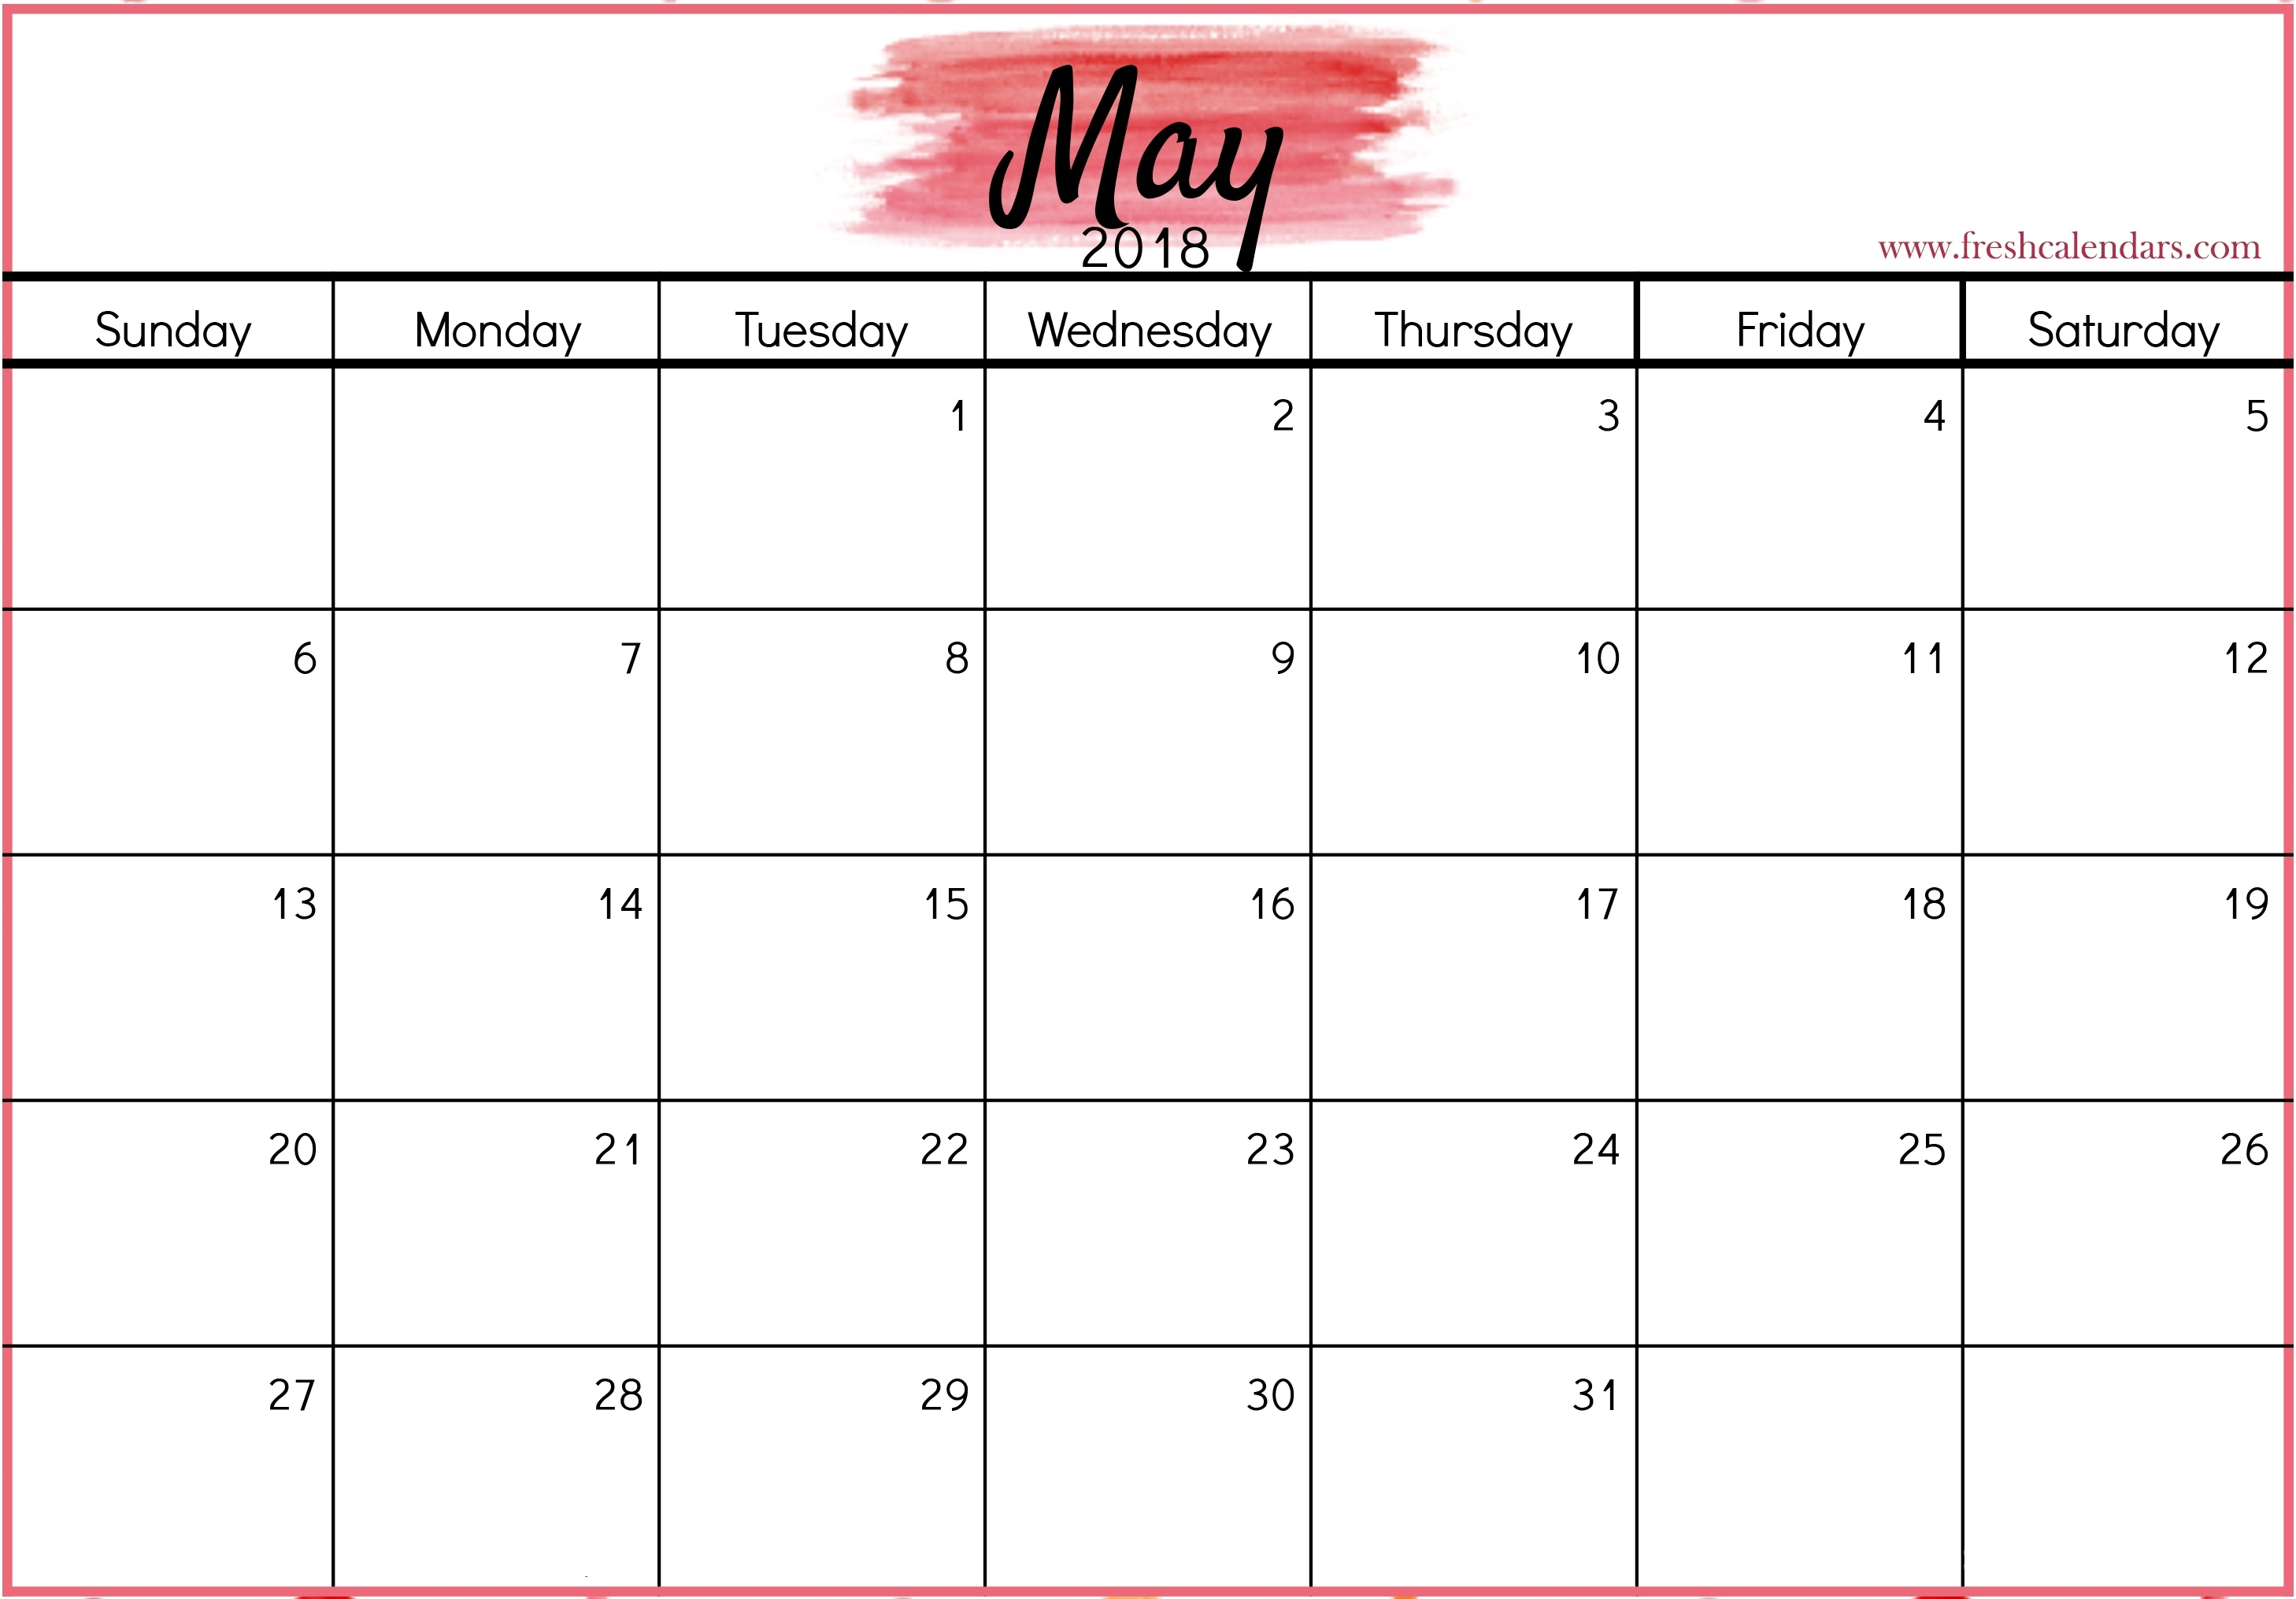 May 2018 Calendar Printable Templates  Monthly Calendars To Print Colorful